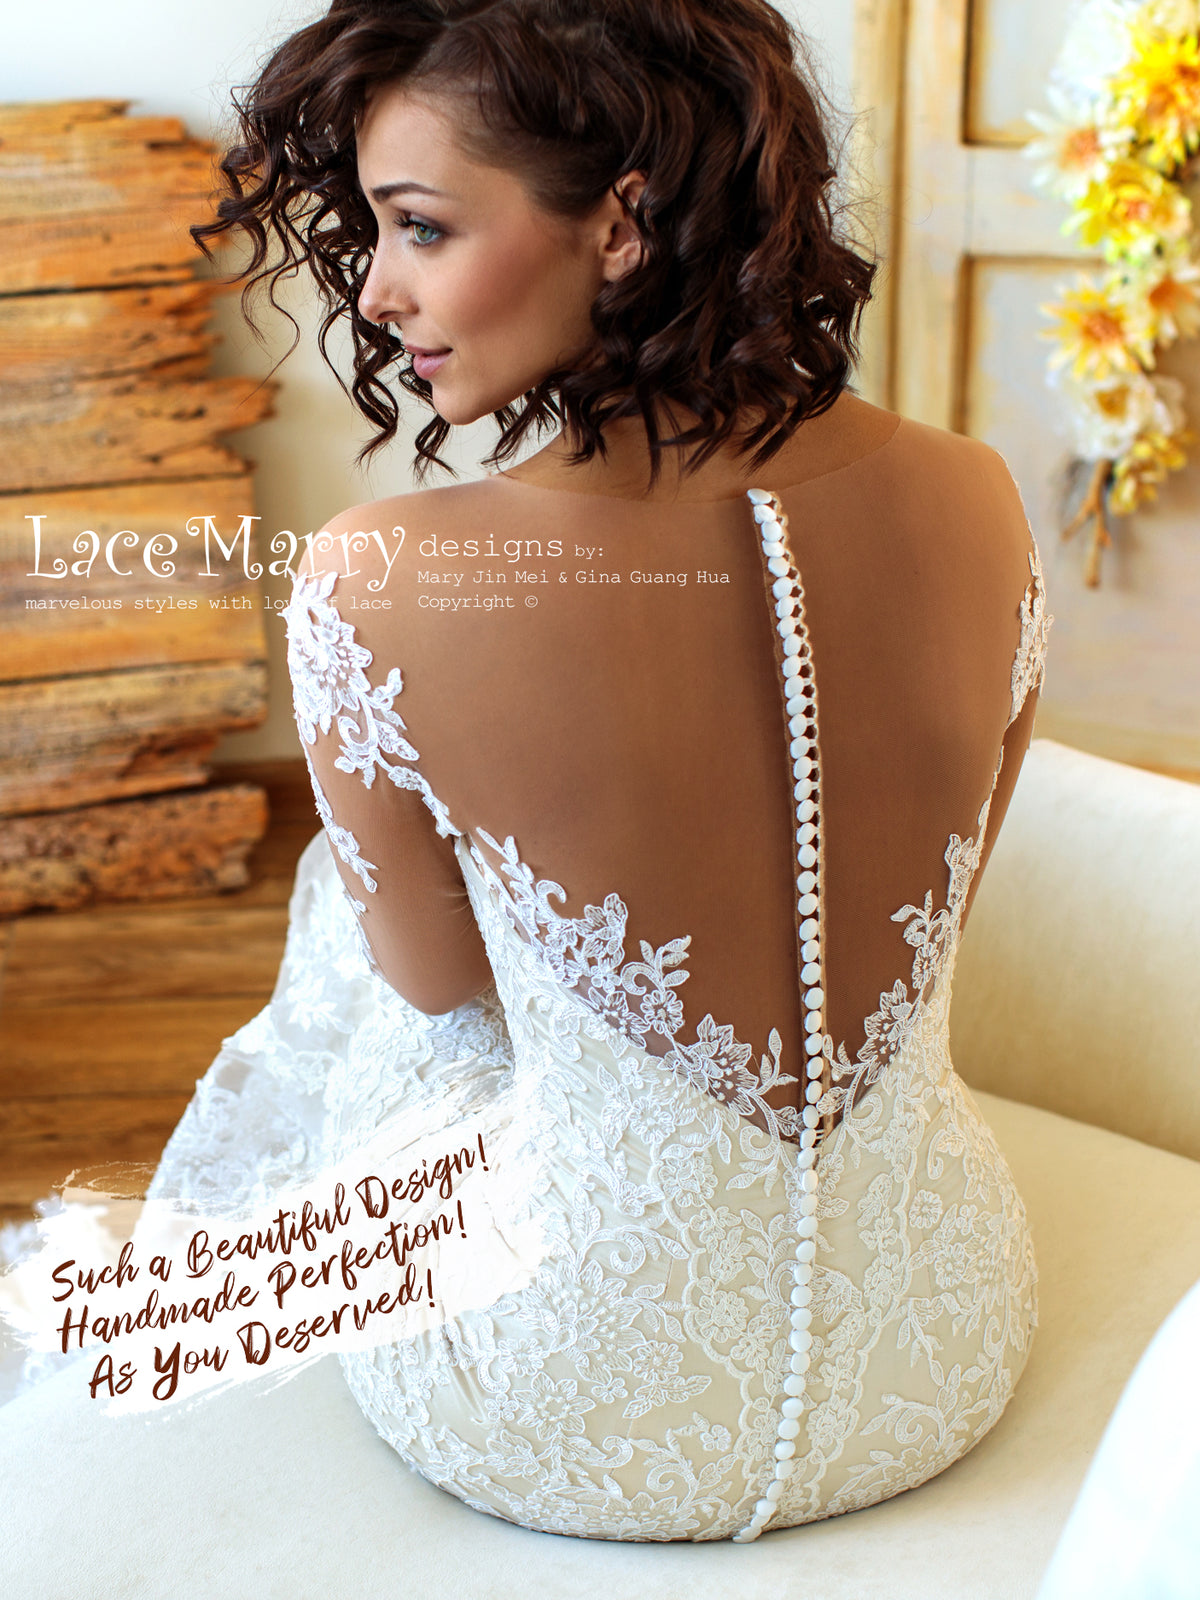 New Style Lace Wedding Dress with Buttons on the Back